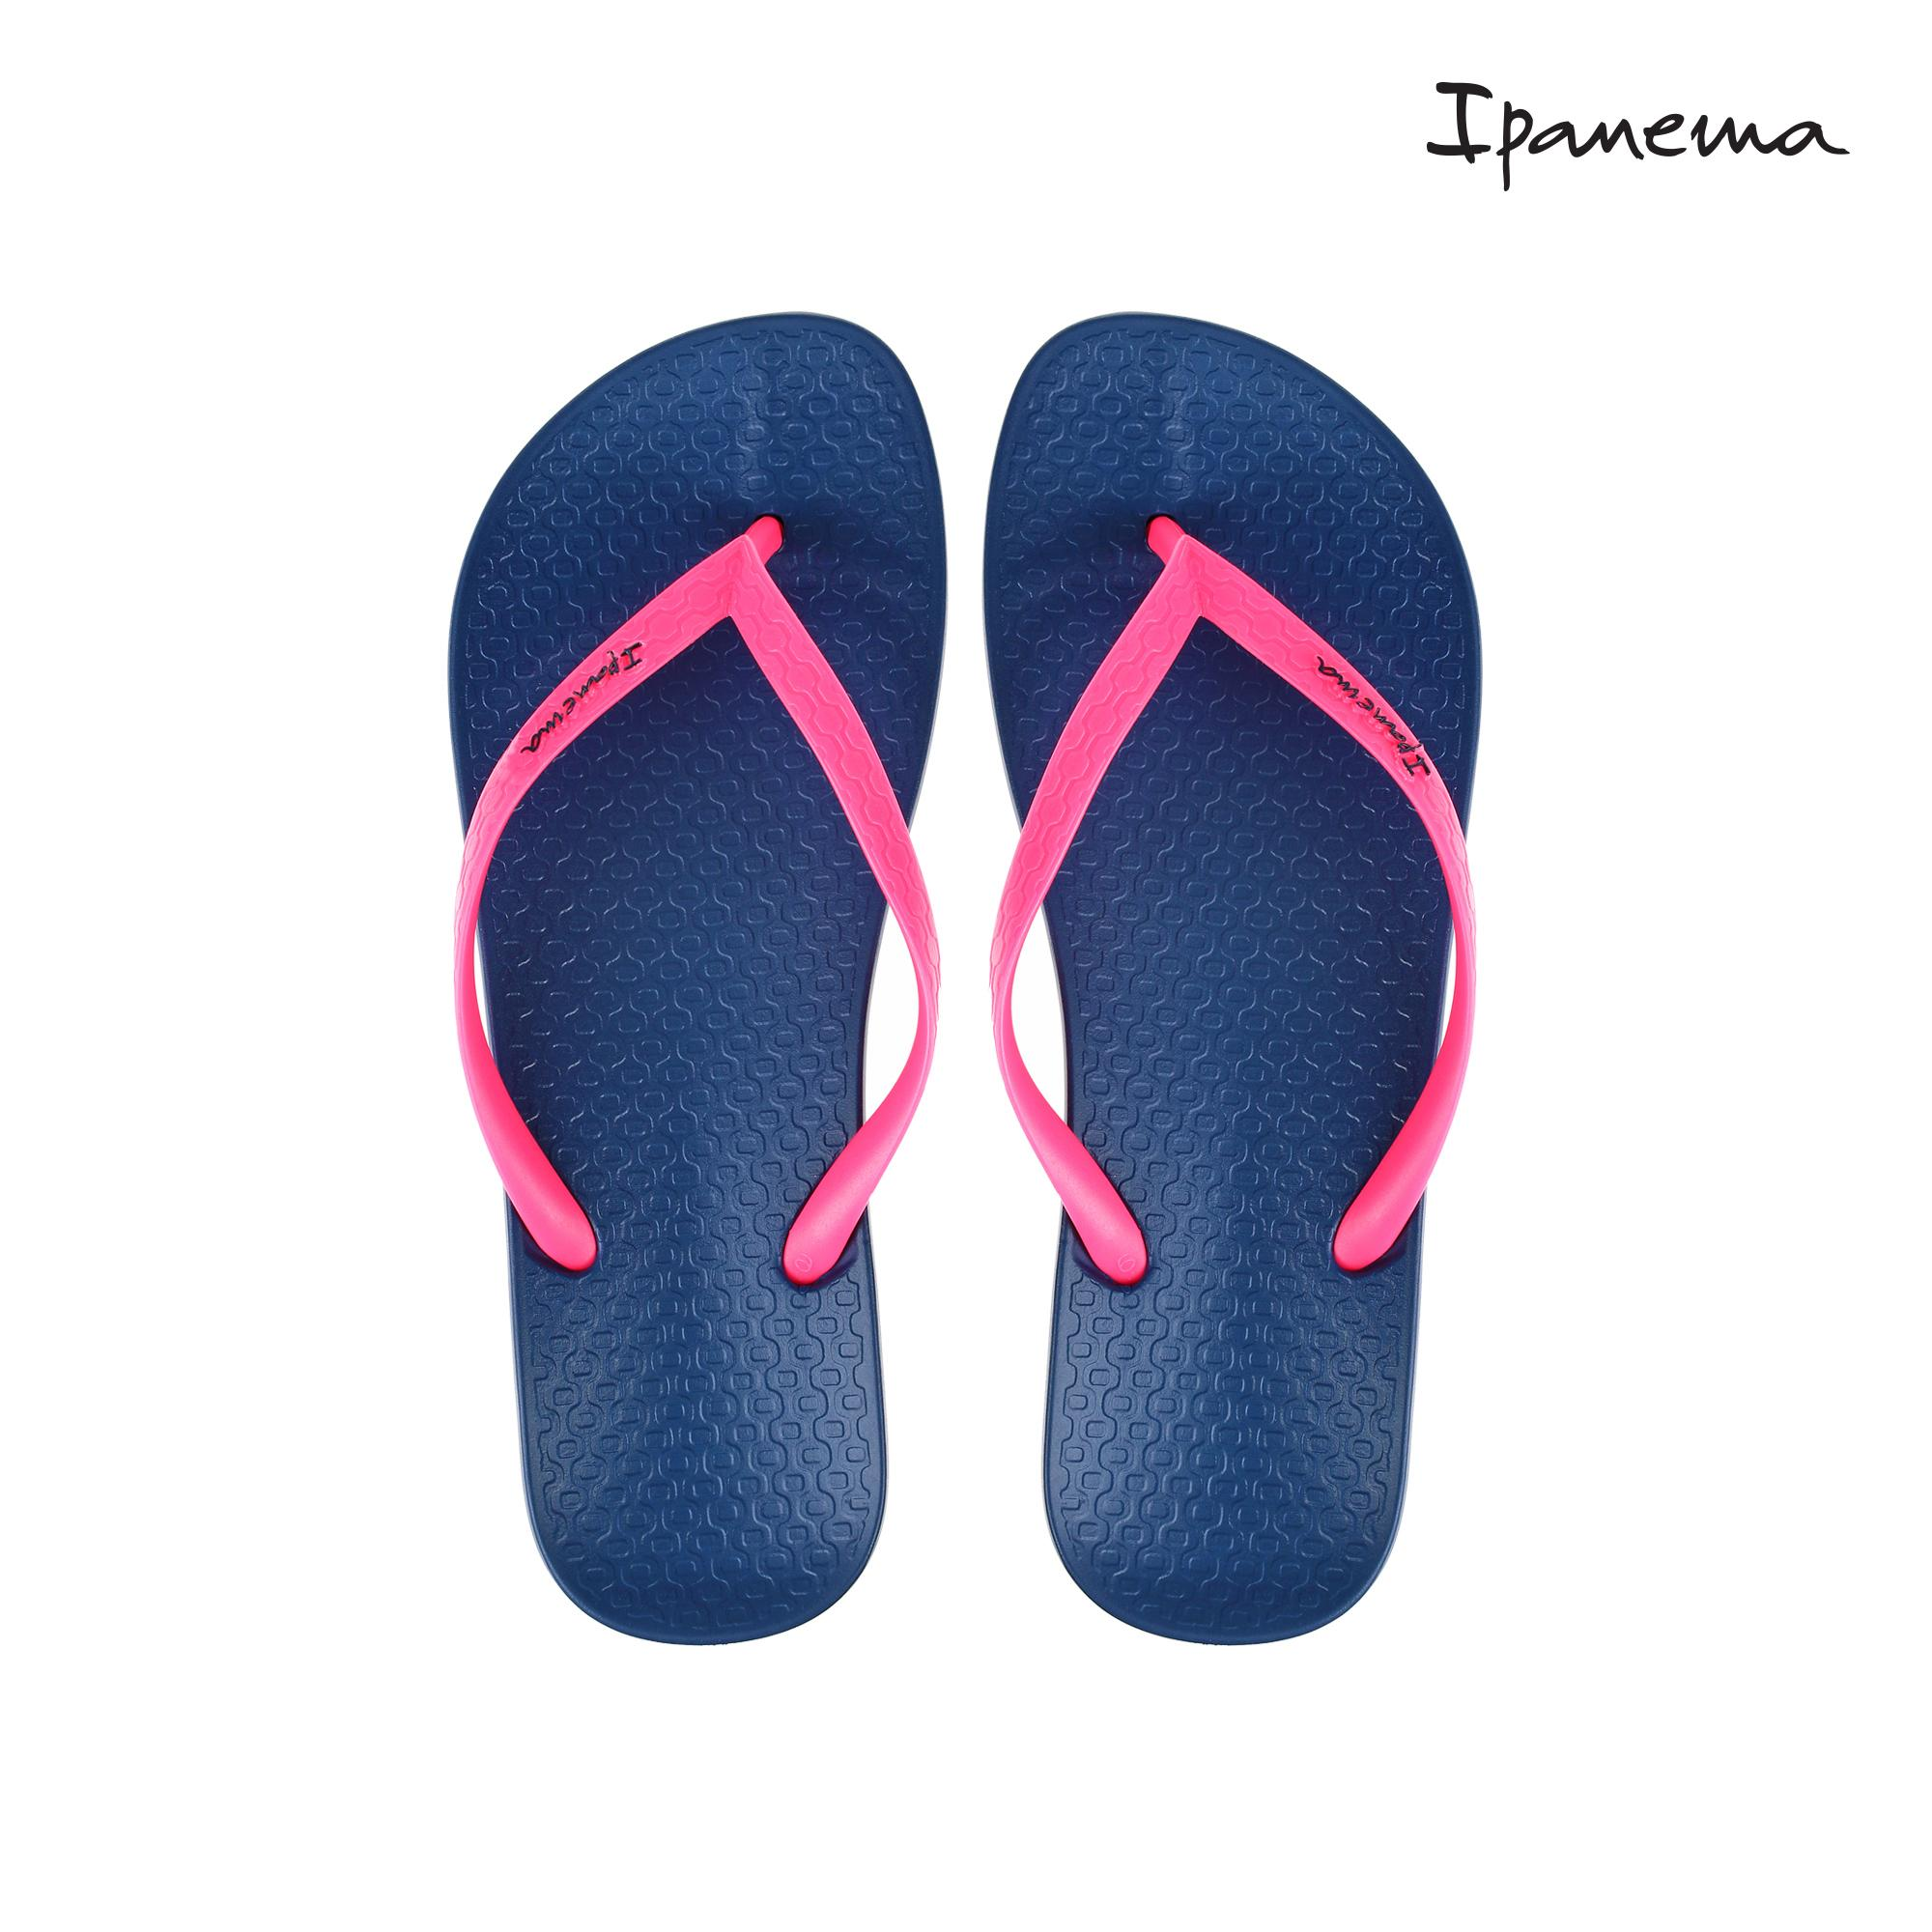 465bb8236348 Ipanema Philippines  Ipanema price list - Ipanema Flip Flop ...